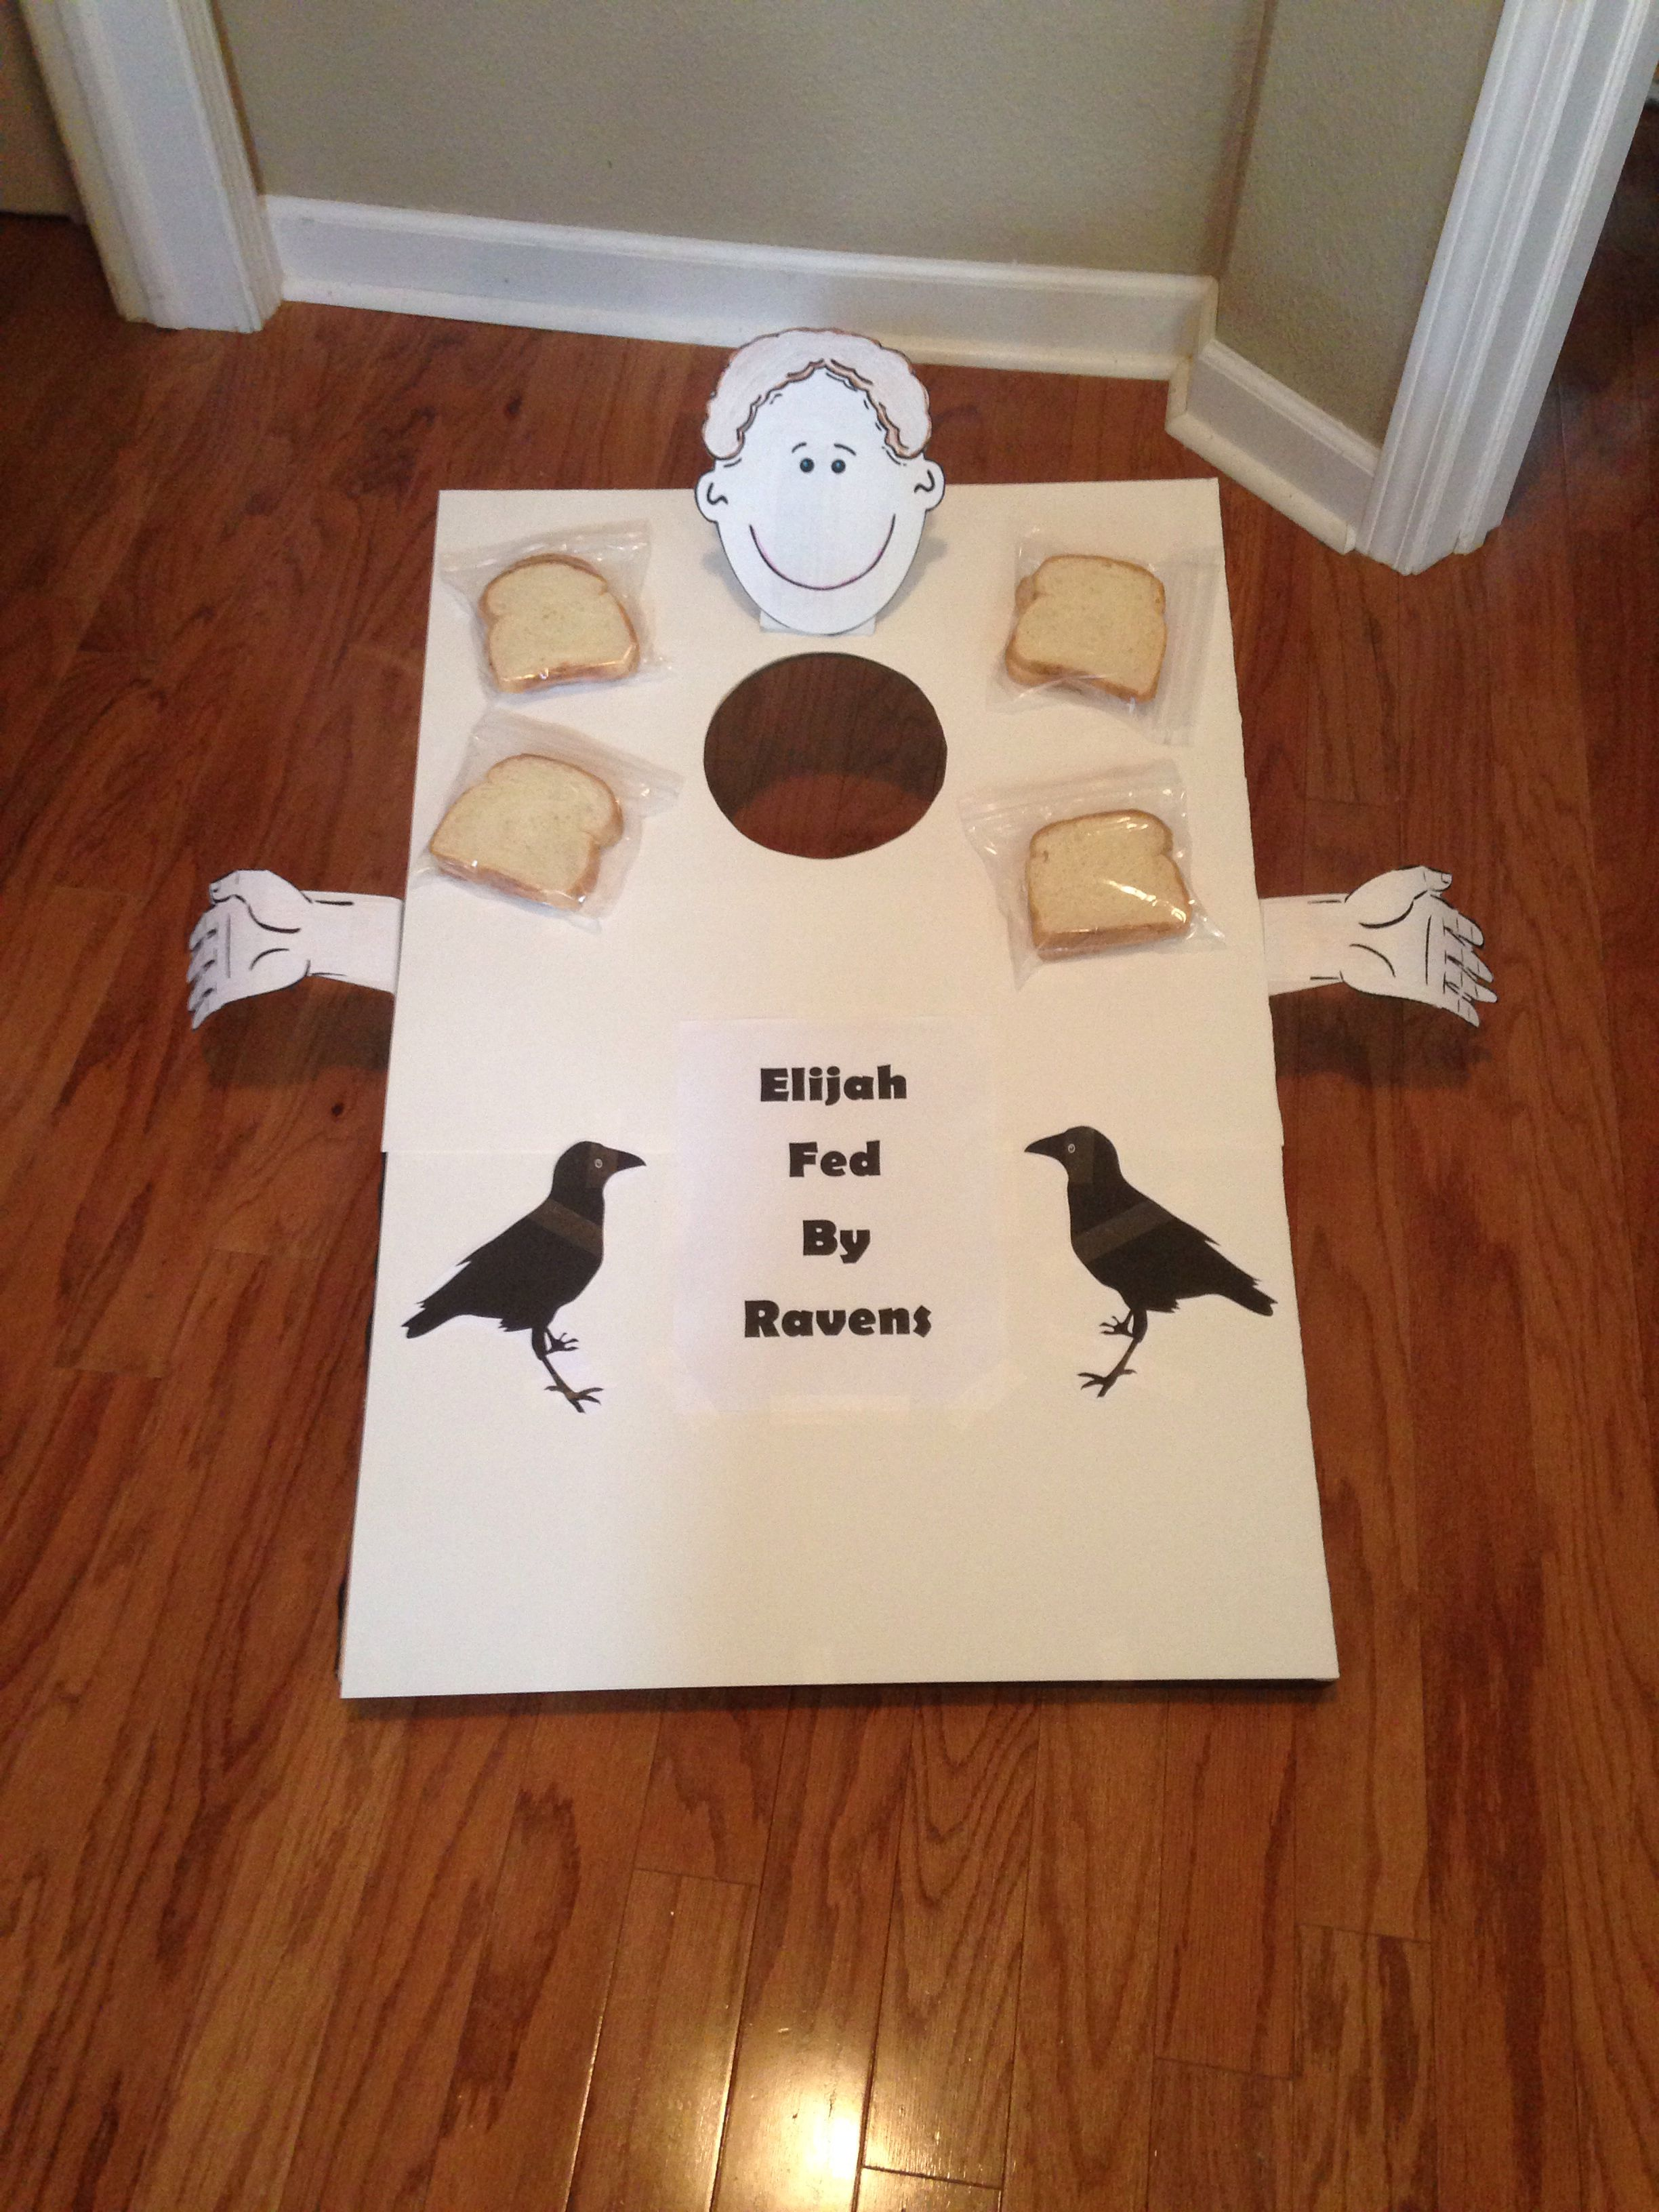 Elijah Fed By Ravens Game Throw The Bread In The Hole